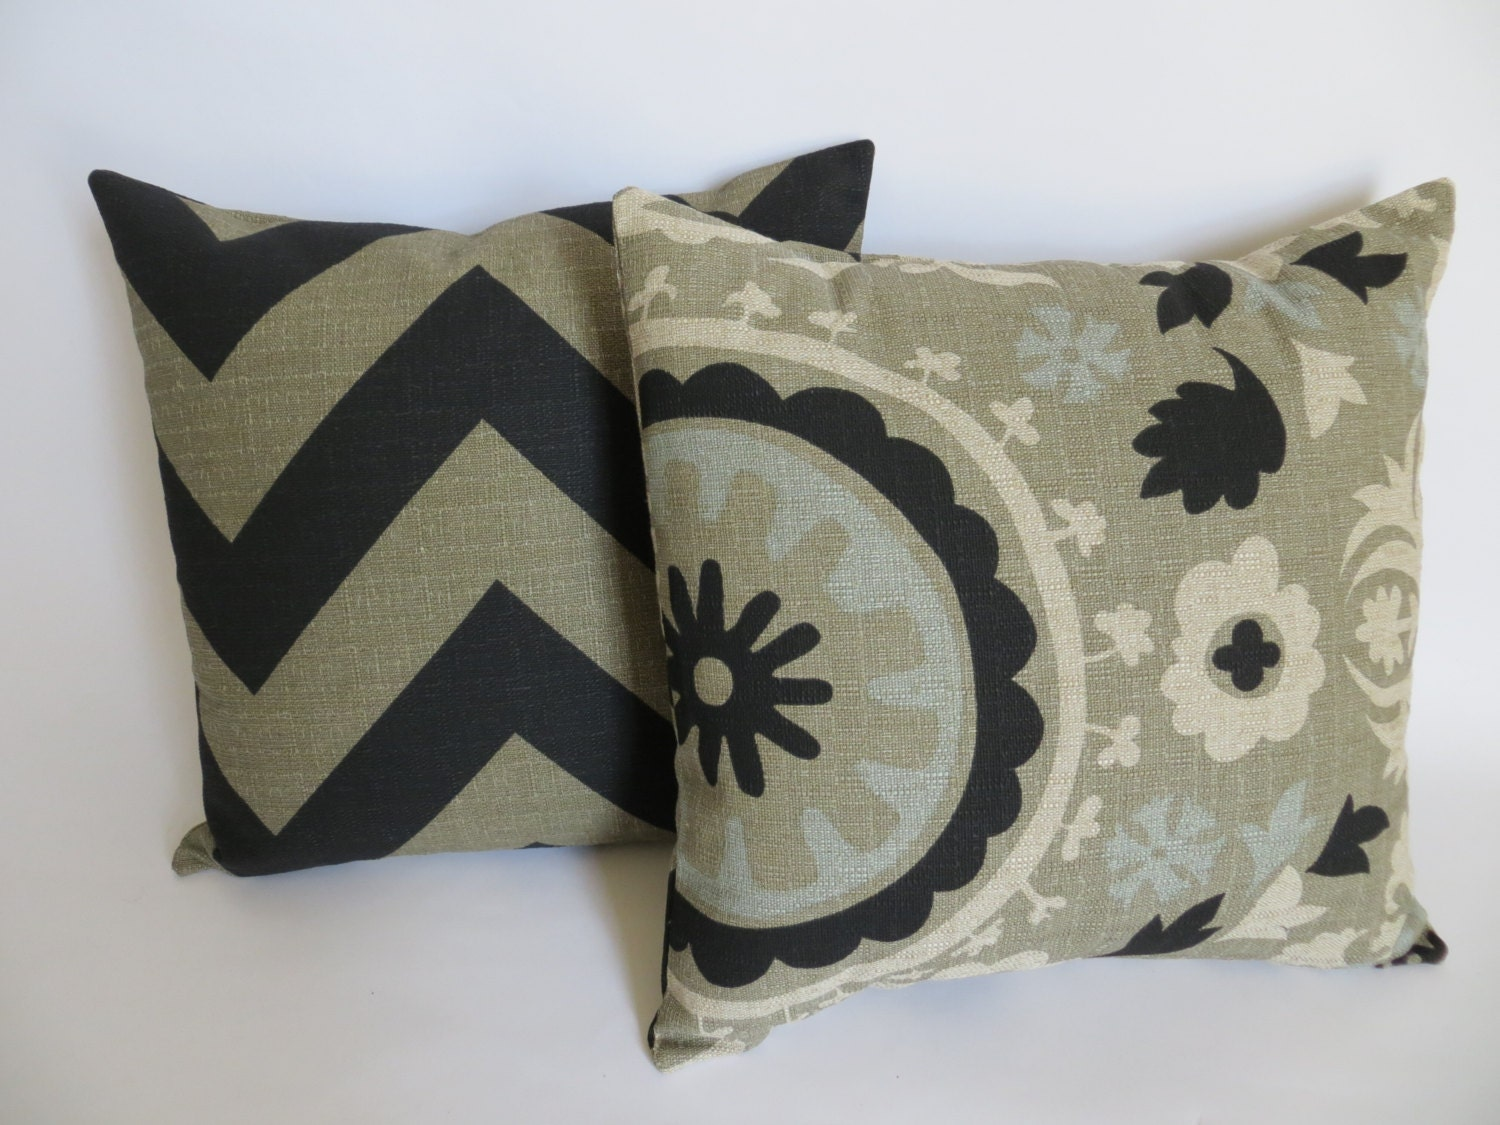 Set of 2 Decorative Throw Zipper Pillow Covers Black by Pillomatic